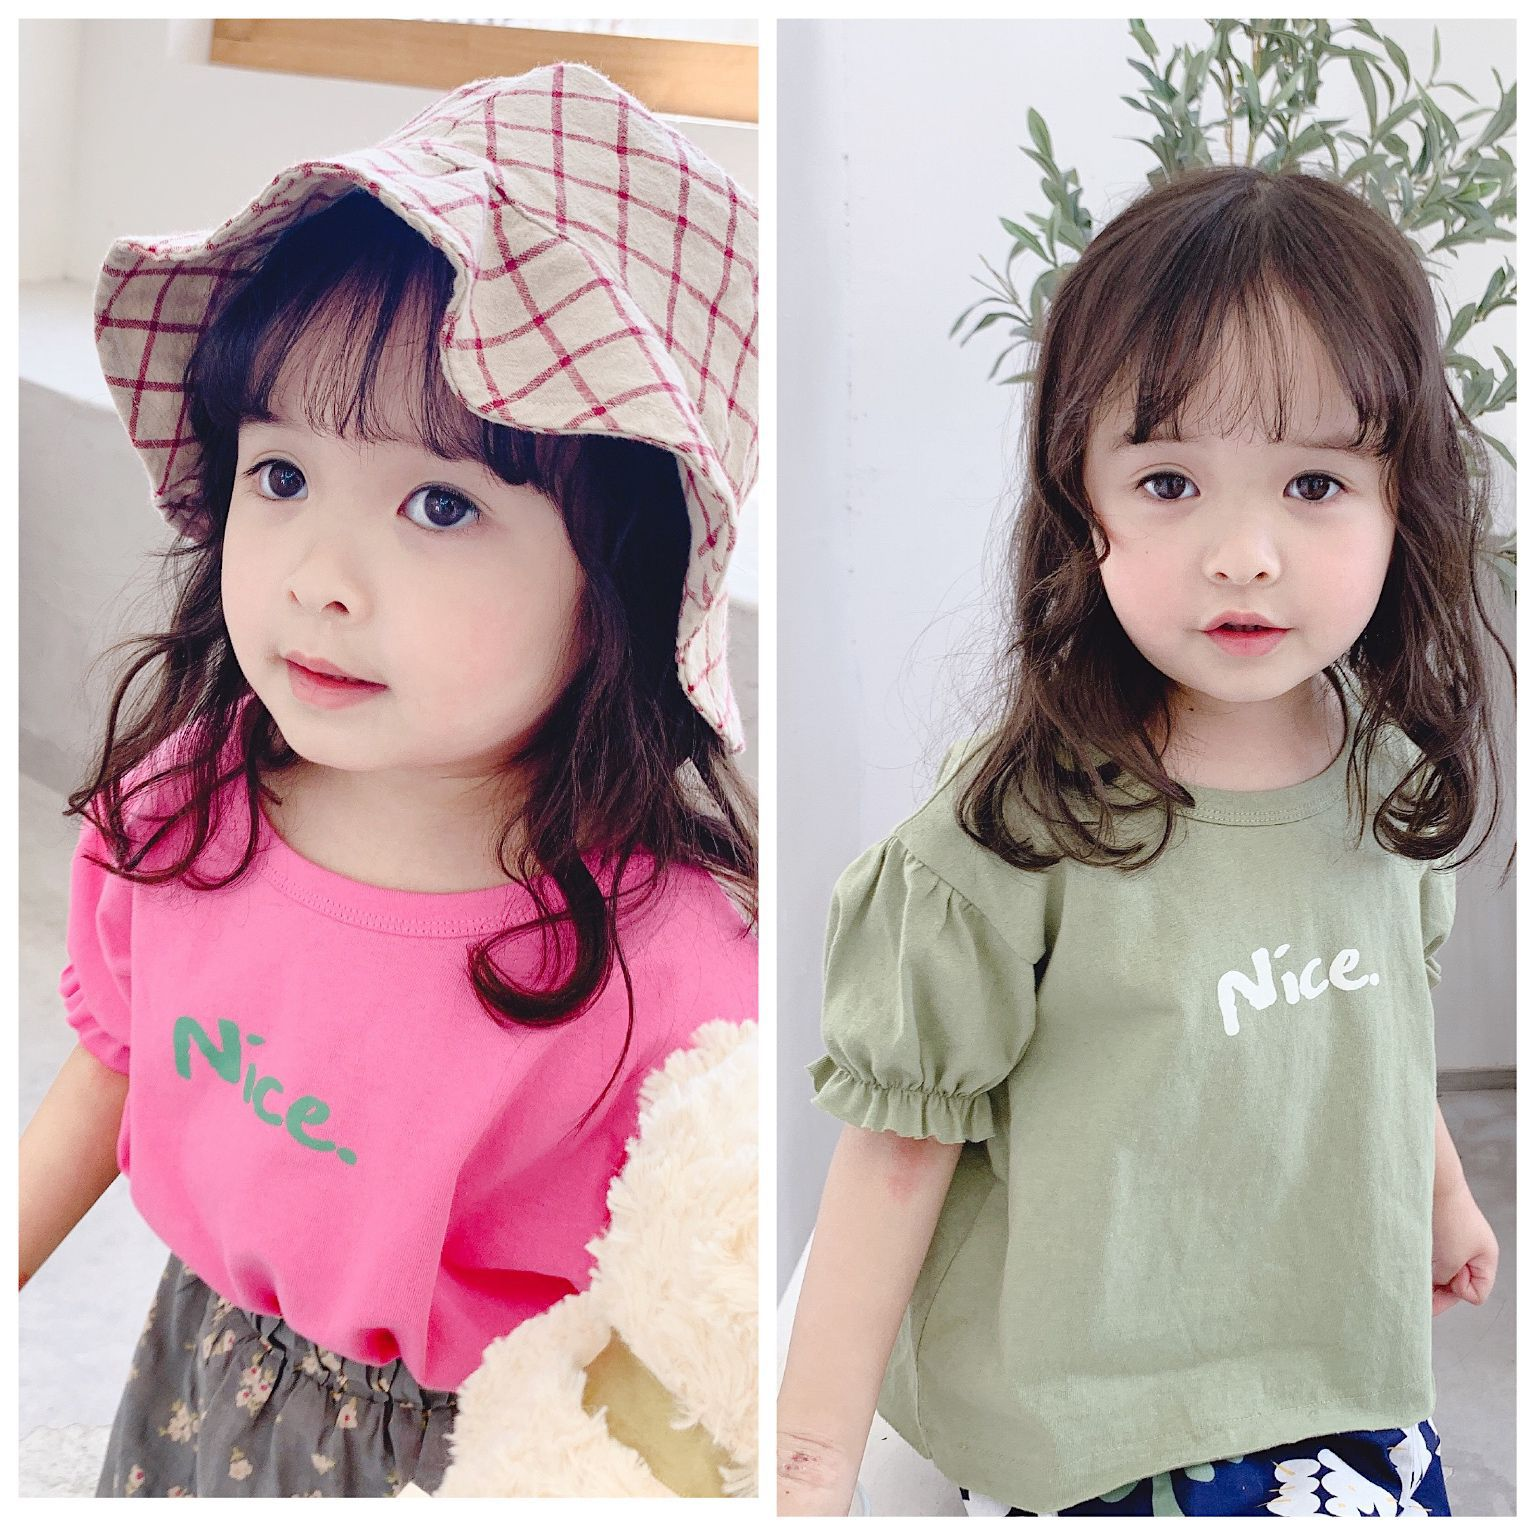 Waiwaibear Solid color T Shirt Baby Rose Red And Bean Green 100% cotton T-shirts Summer Tee Girls Tshirt Tops 19221Waiwaibear Solid color T Shirt Baby Rose Red And Bean Green 100% cotton T-shirts Summer Tee Girls Tshirt Tops 19221